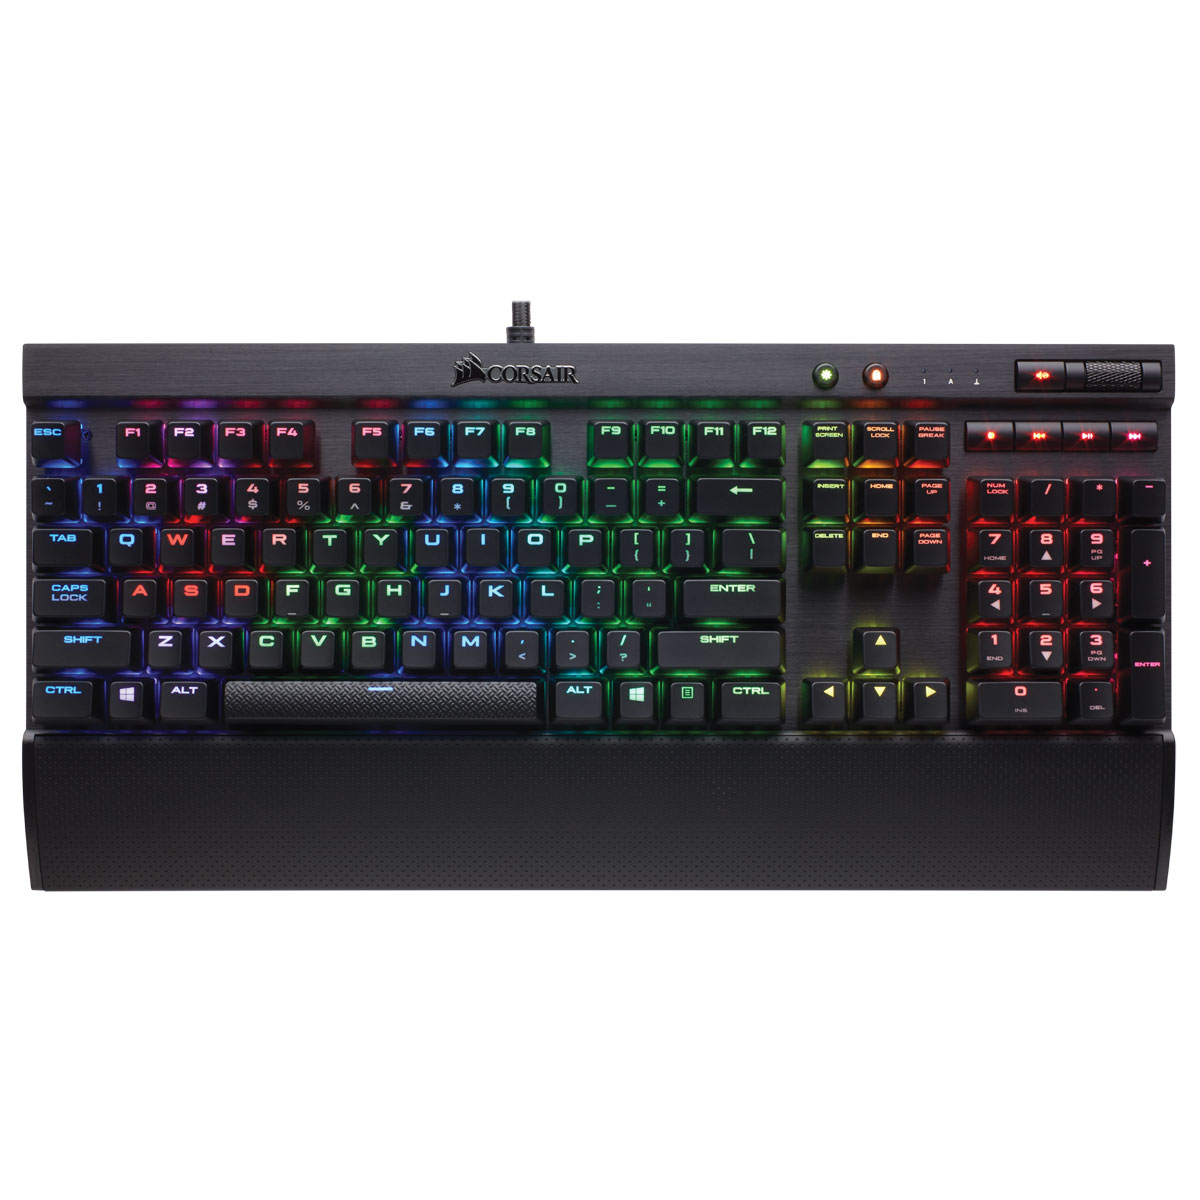 Clavier PC Corsair Gaming K70 LUX RGB (Cherry MX Red) Clavier gaming - interrupteurs mécaniques rouges (switches Cherry MX Red) - rétroéclairage RGB - touches multimédia - AZERTY Français